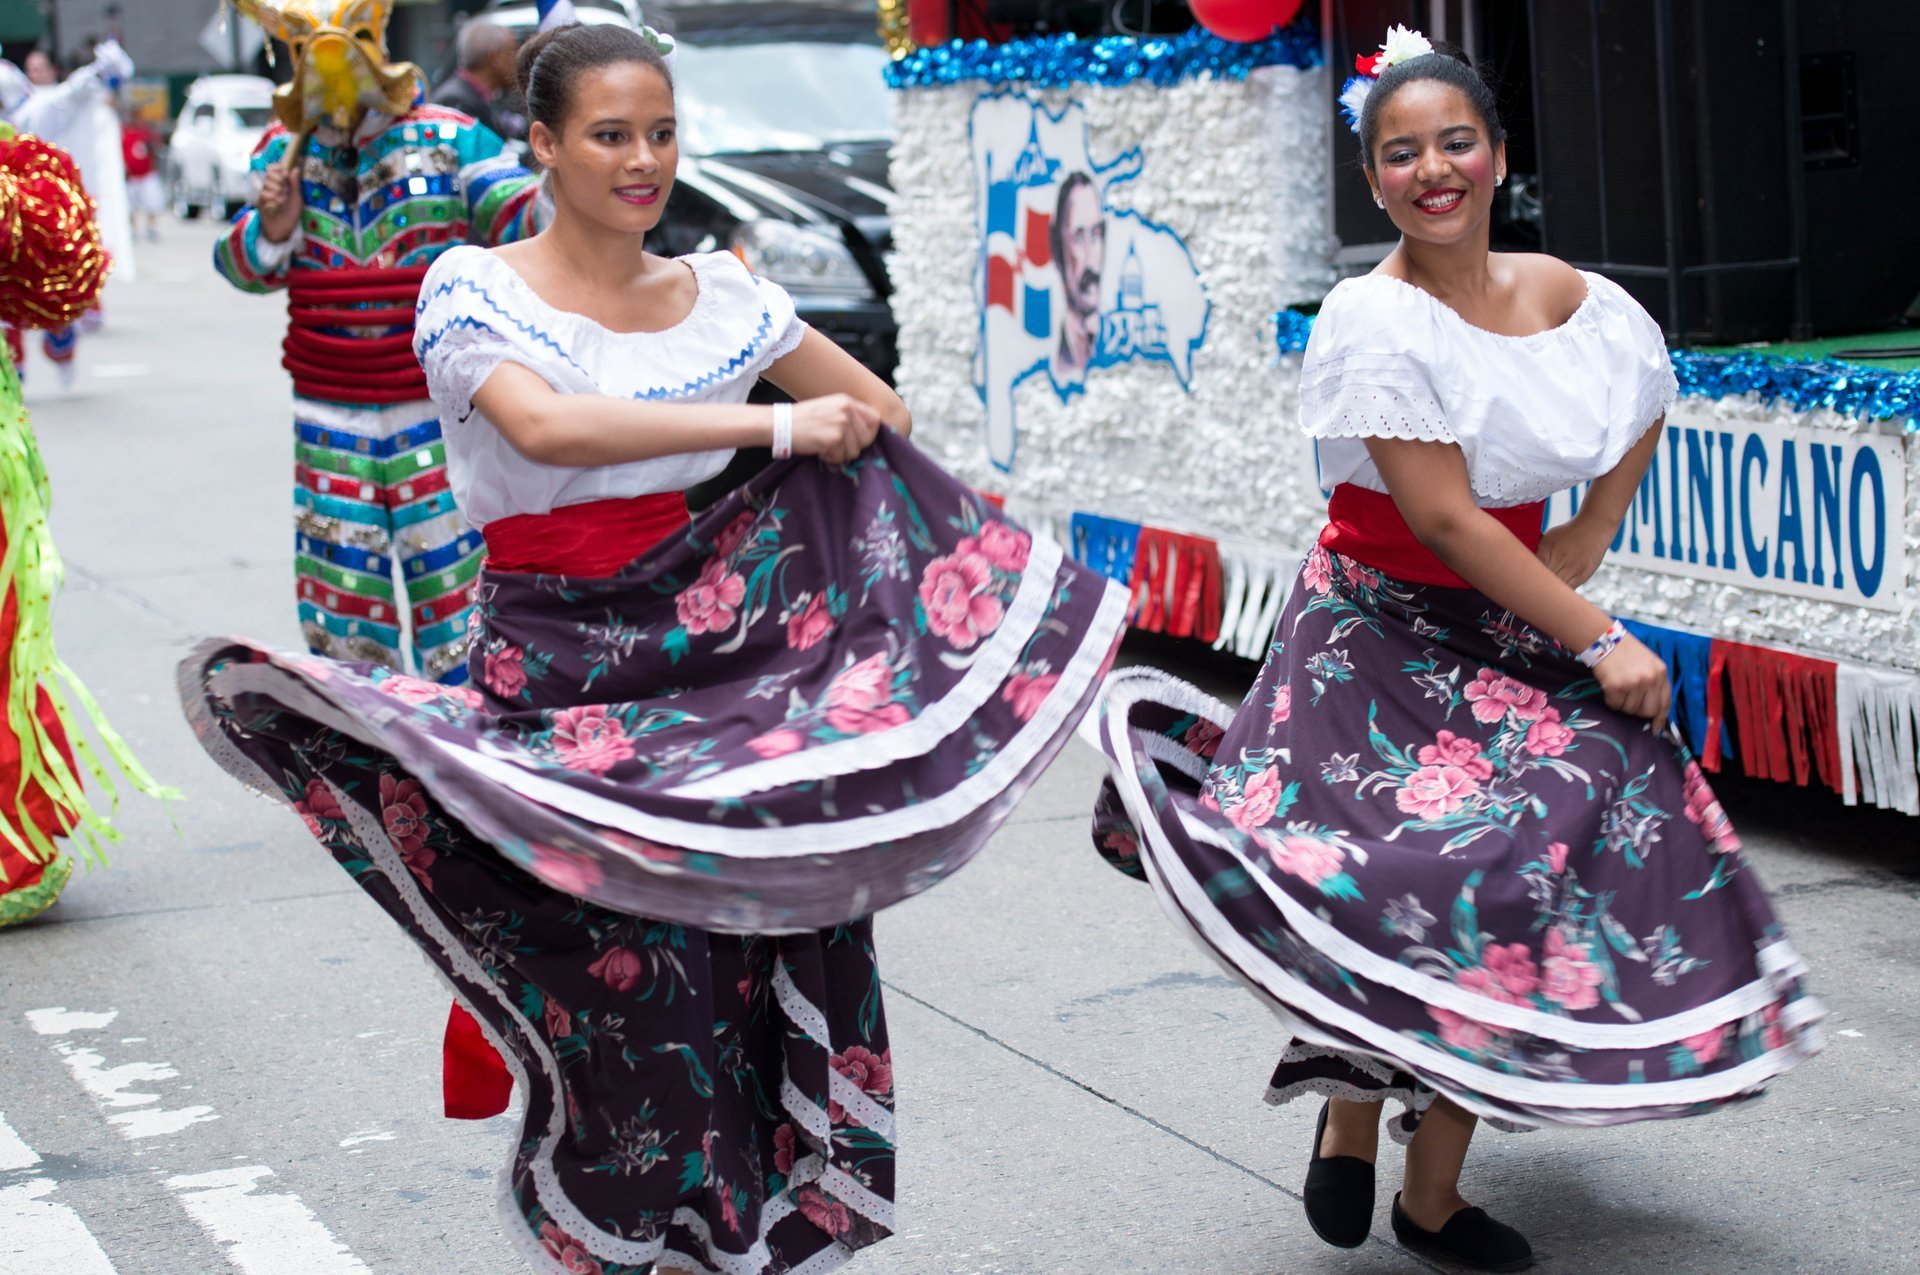 Dominican Day Parade in New York - Best Season 2020